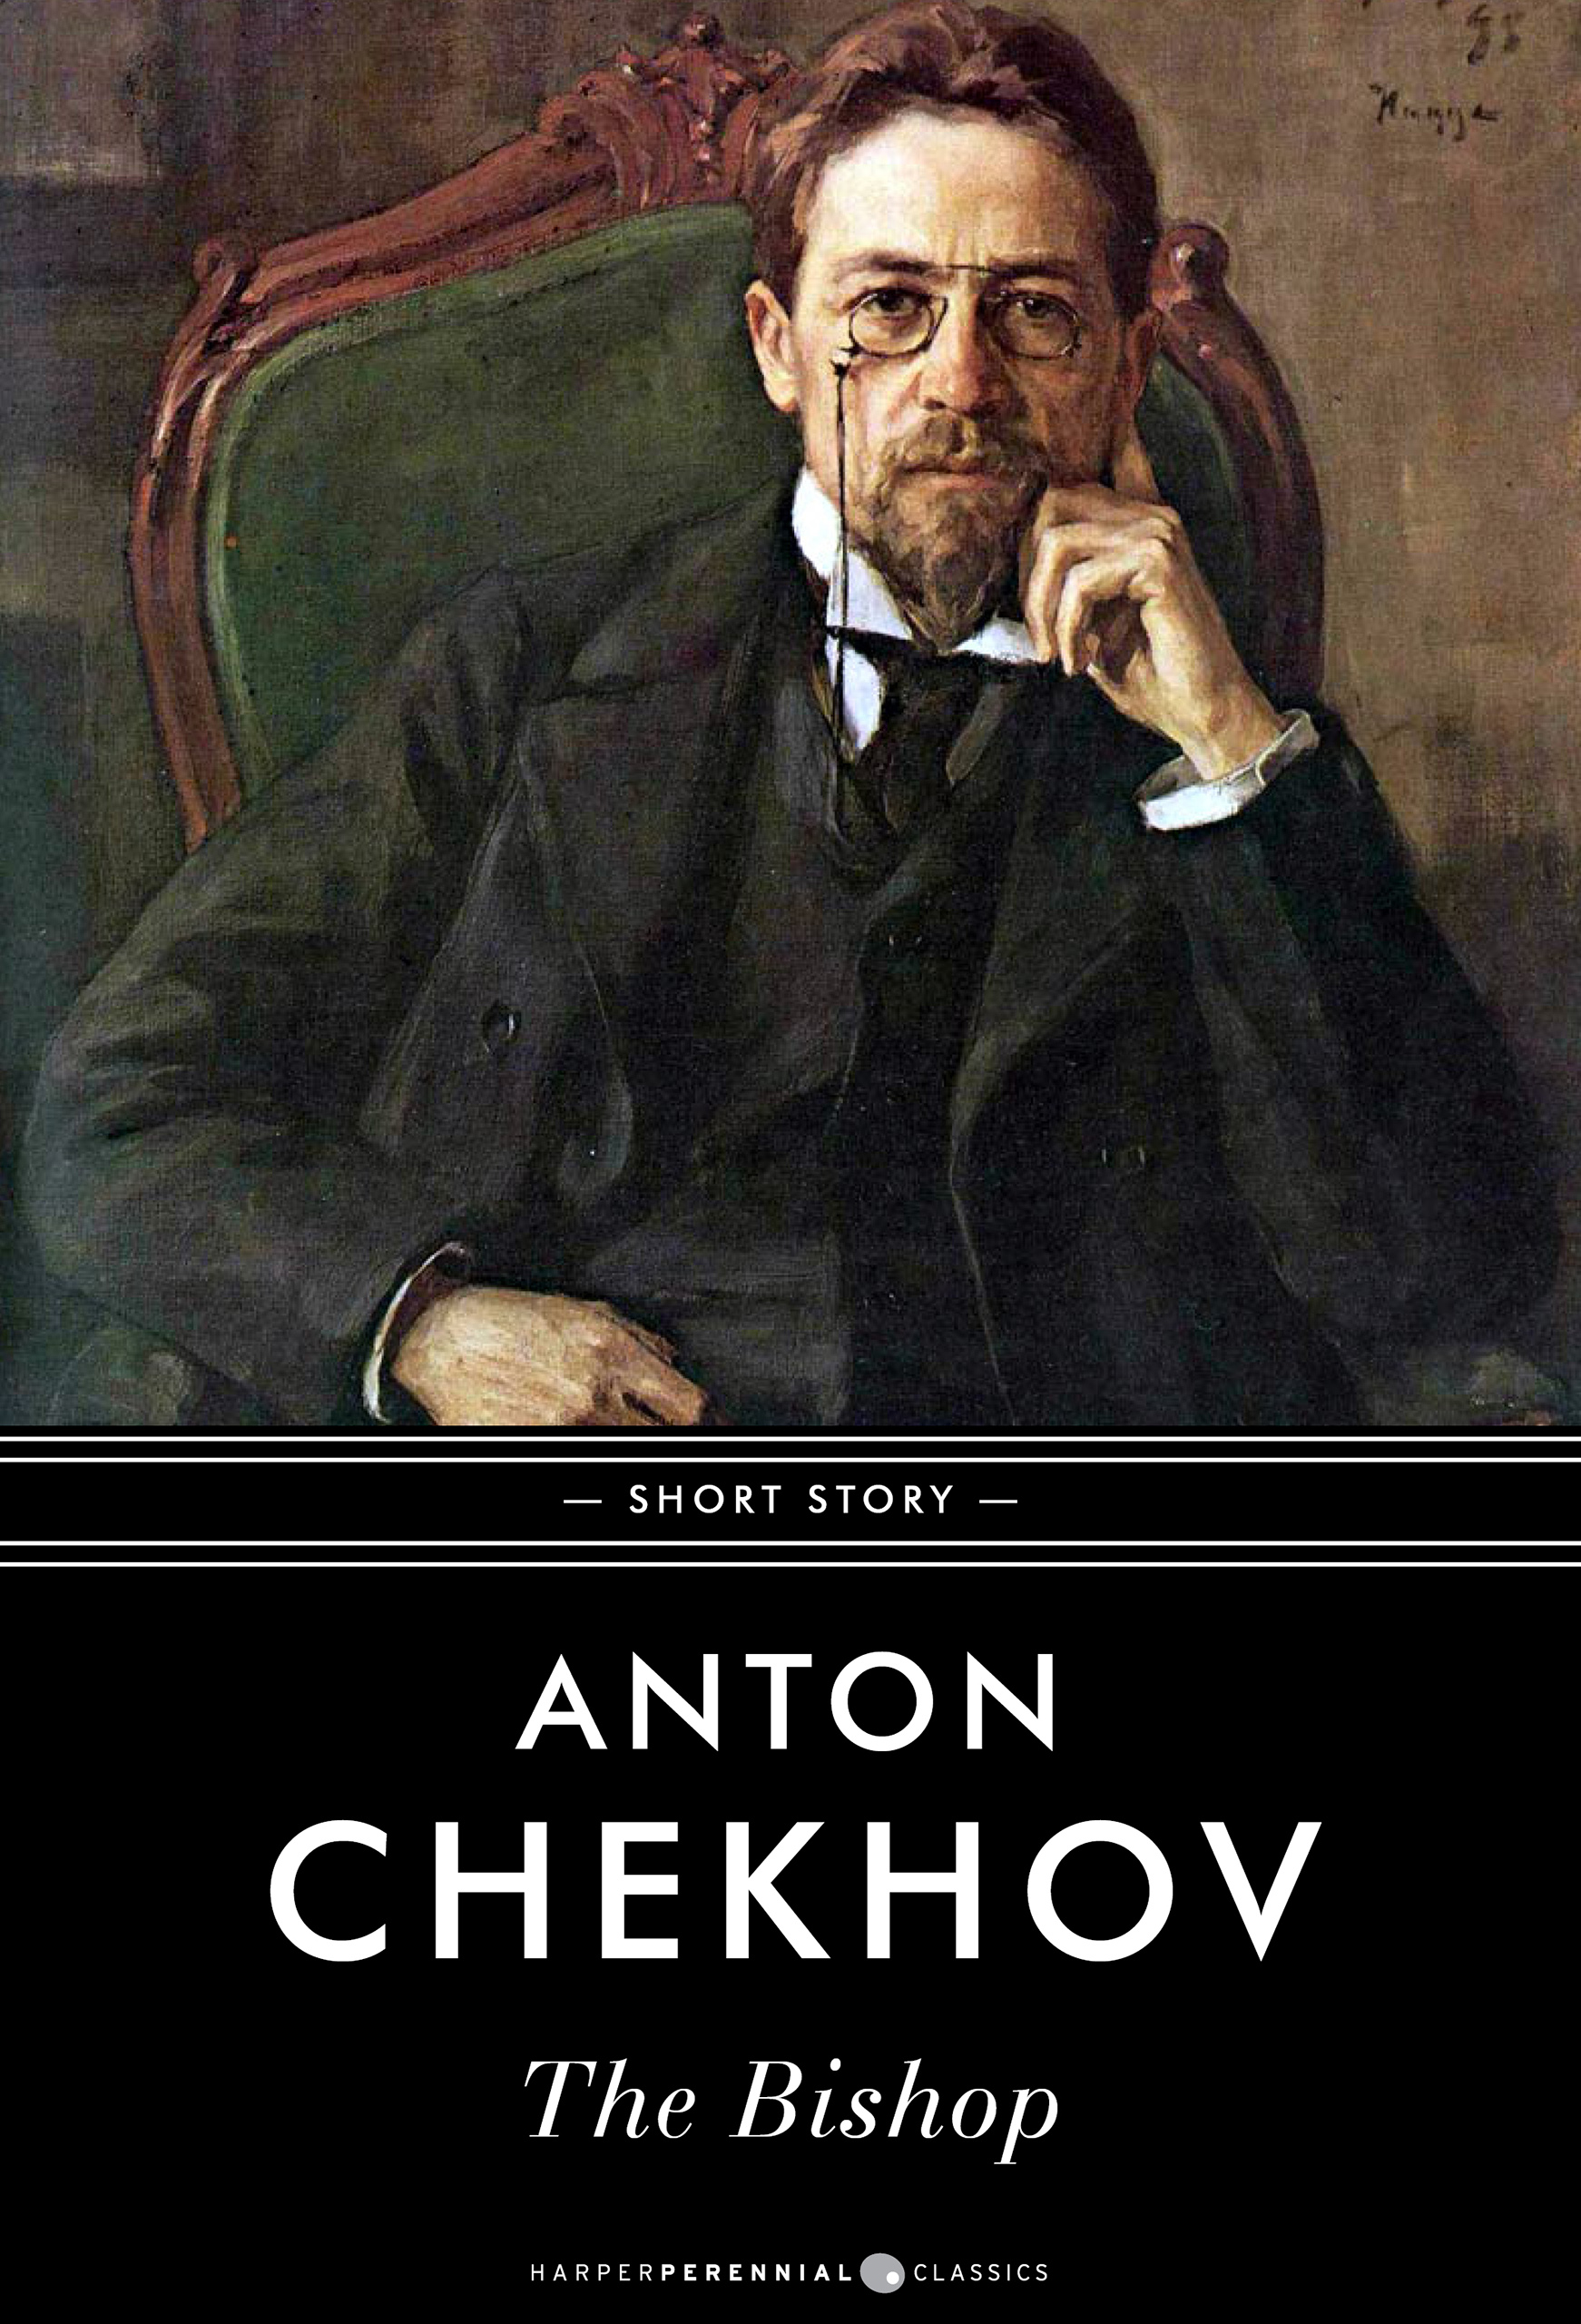 the bet by anton chekhov theme essay